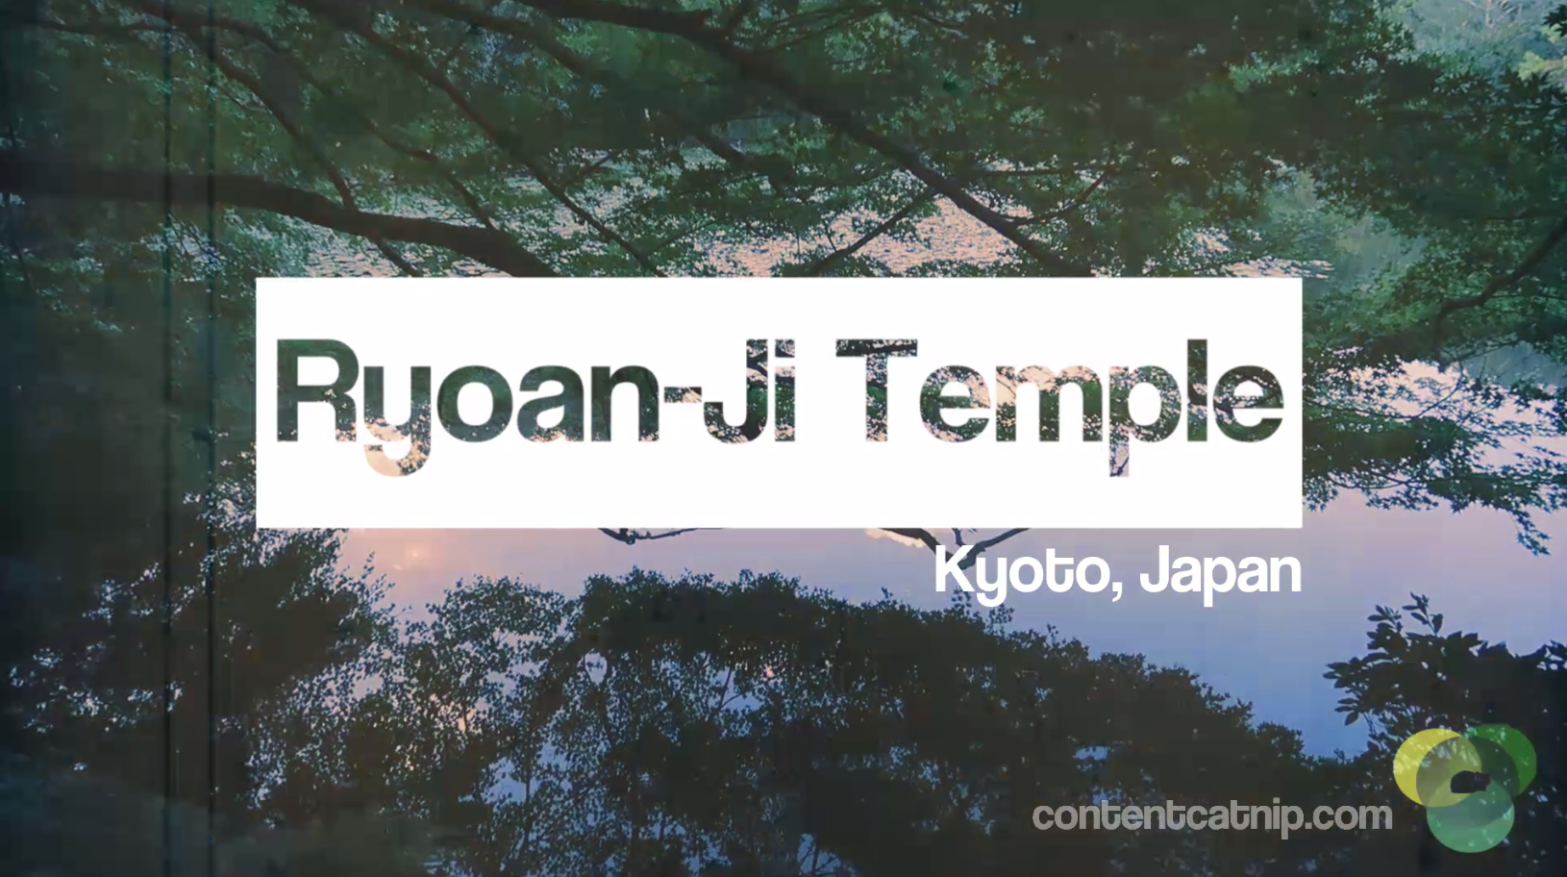 Travel: Ryoan-ji temple and gardens, Kyoto